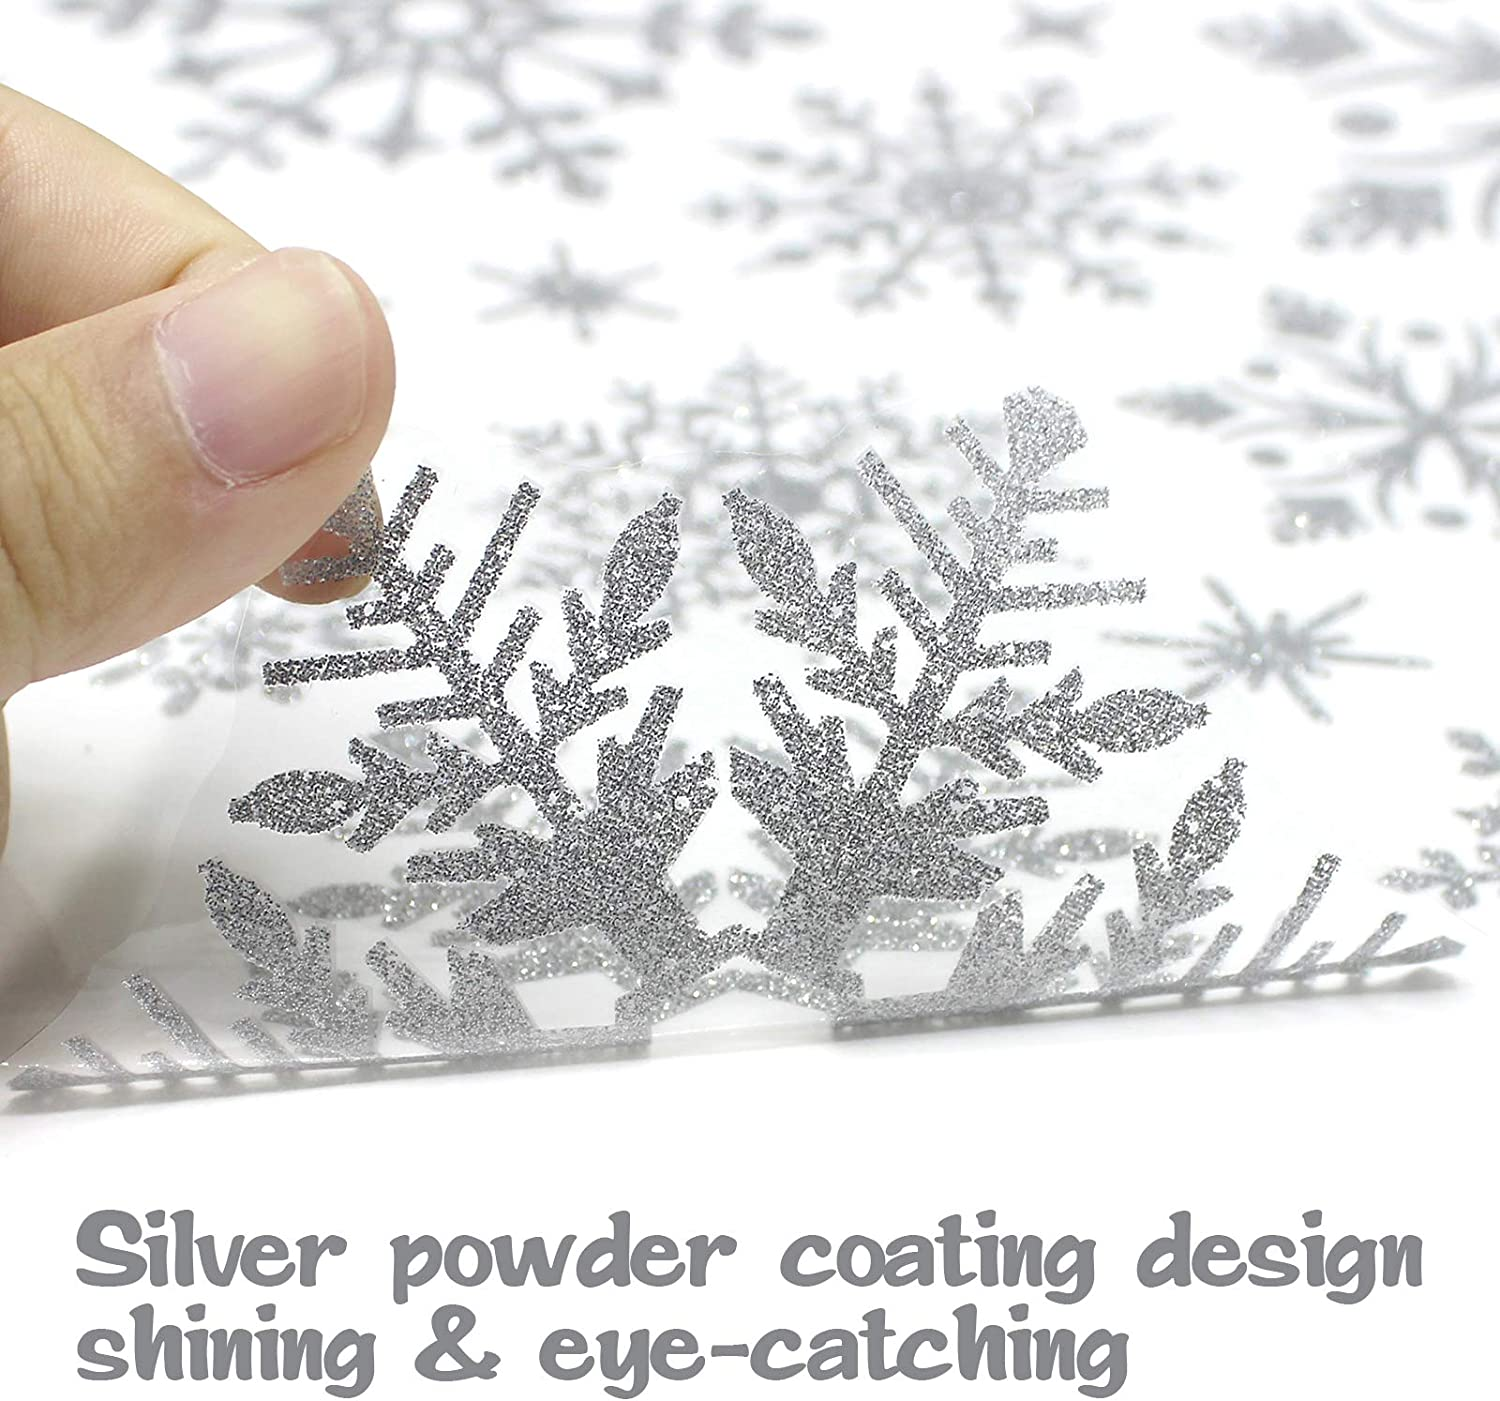 Xmas Decals Decorations Snowflake Santa Claus Reindeer Clings for Christmas Holiday Party 178 PCS 8 Sheet Christmas Window Clings Snowflake Stickers for Glass